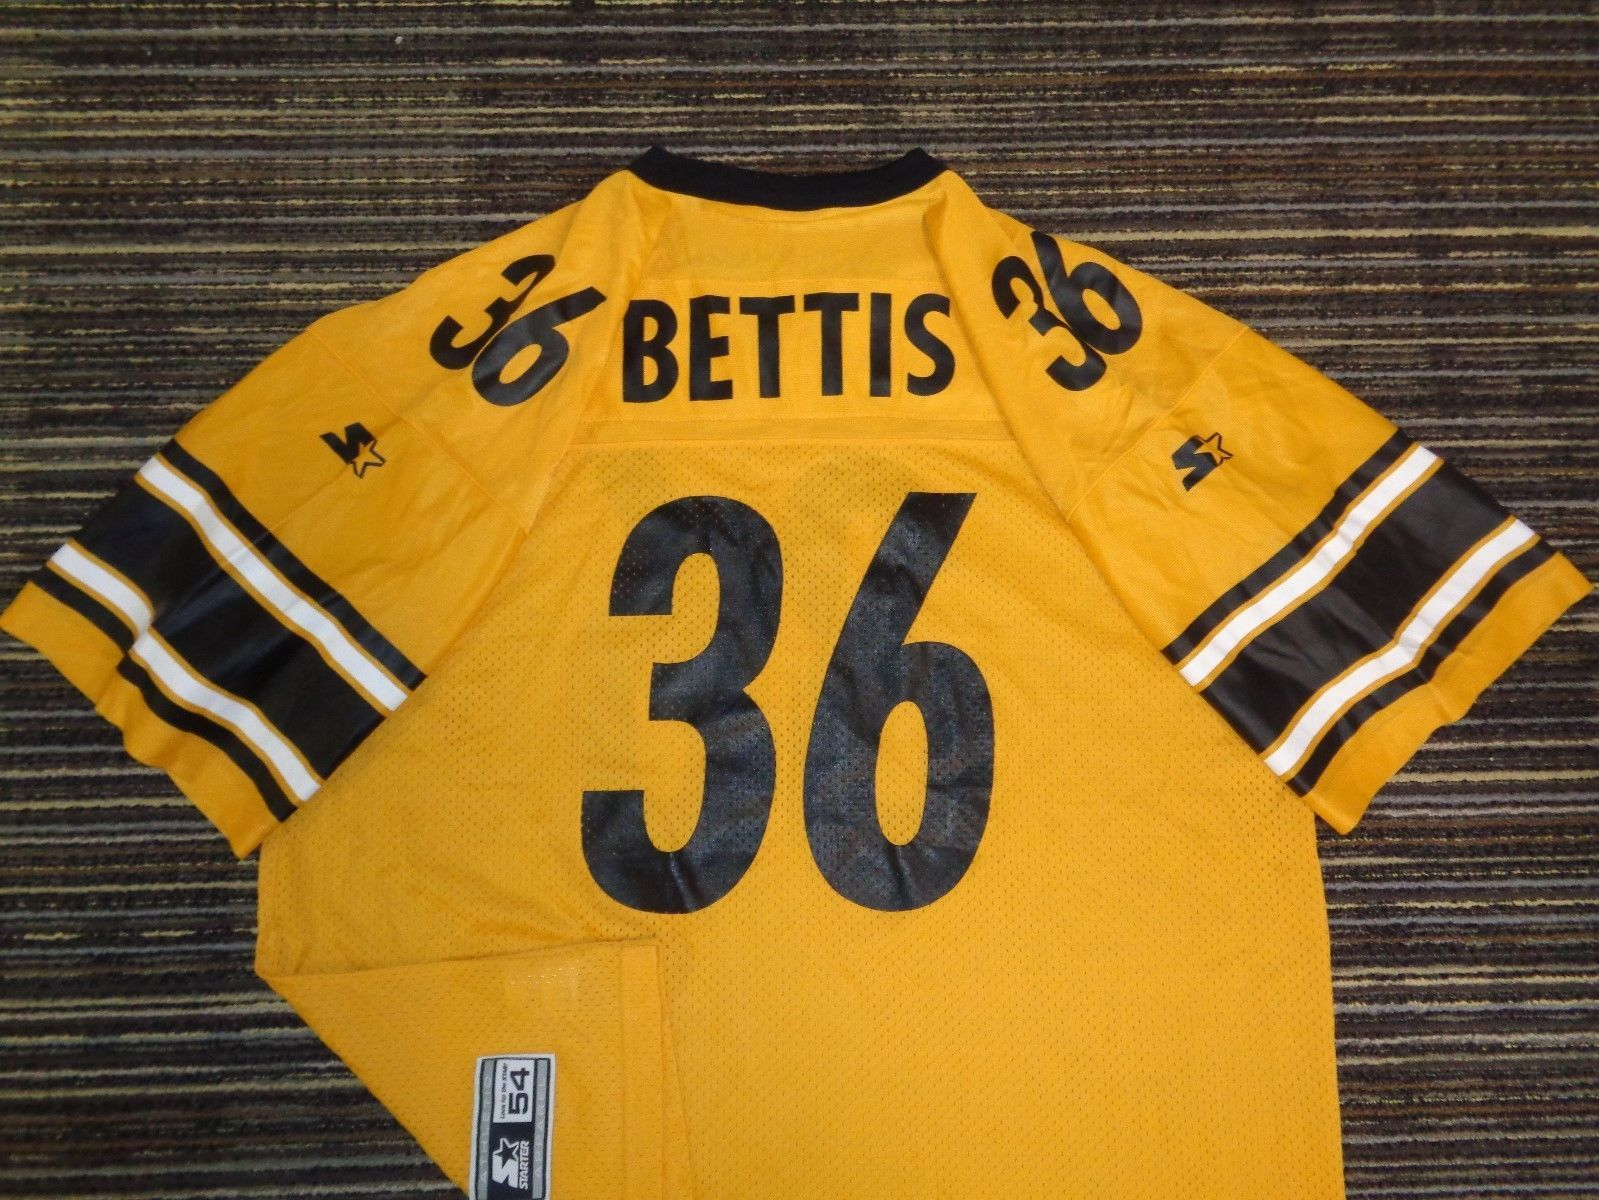 5a3943247 JEROME BETTIS  36 PITTSBURGH STEELERS STARTER GOLD YELLOW NFL MENS GAME  JERSEY (eBay Link)